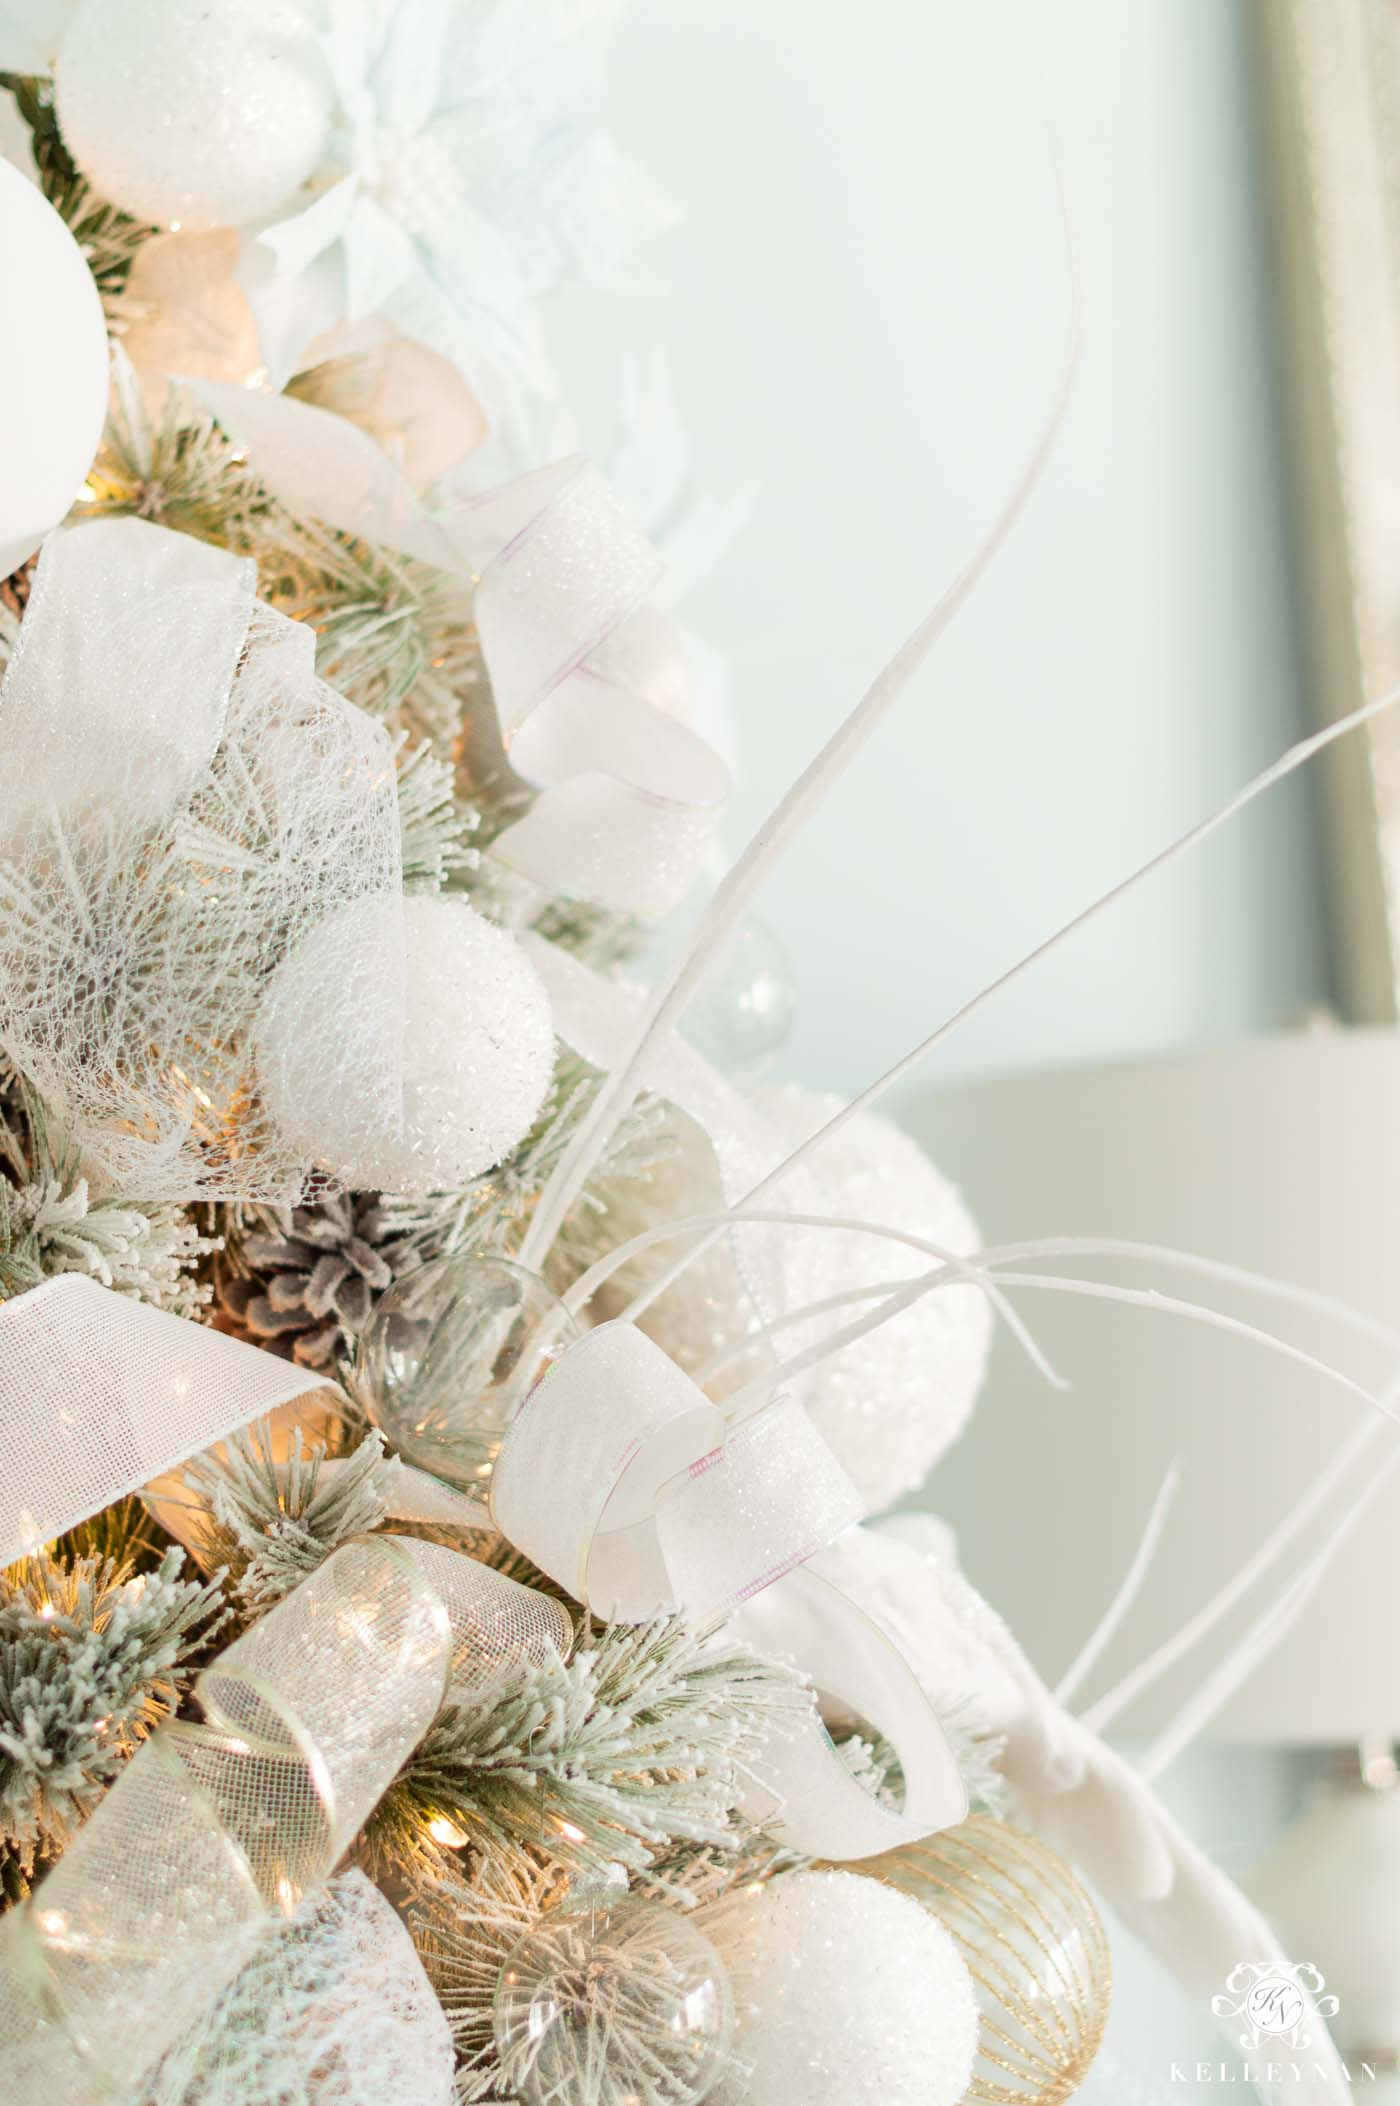 White Ornaments on Flocked, White Christmas Trees with Pale Blue Accents